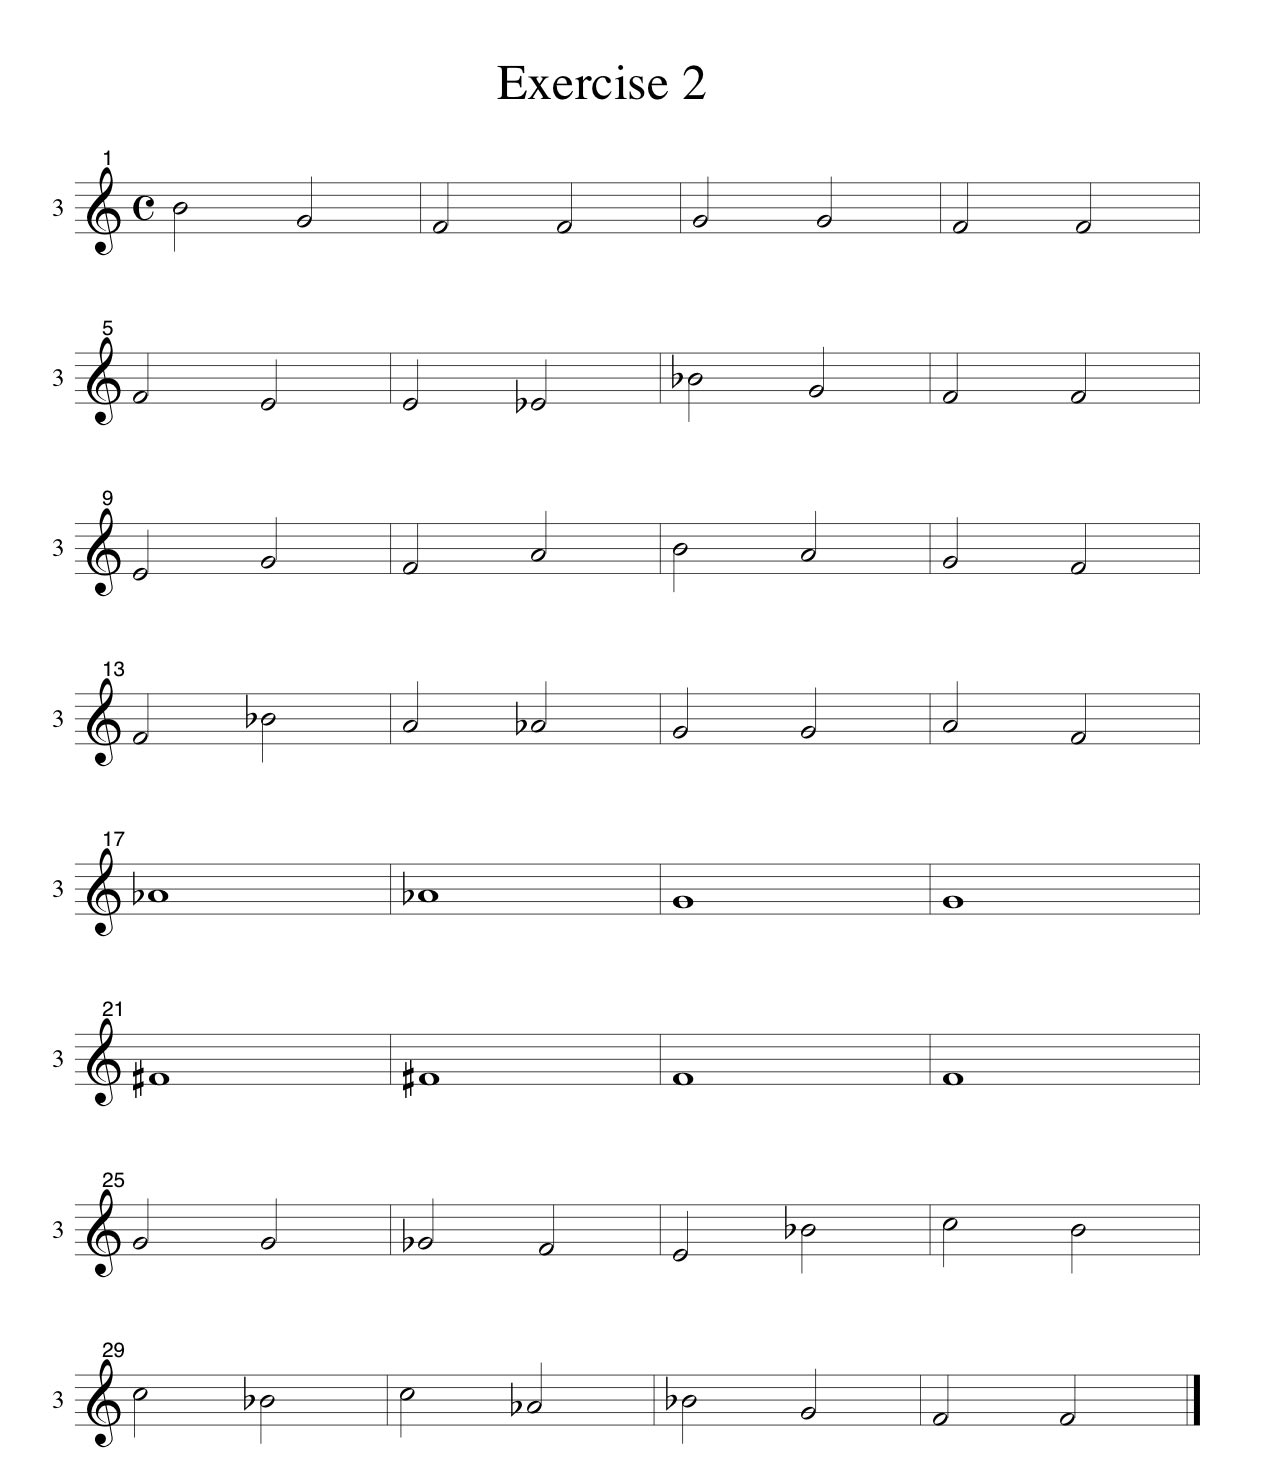 Tenor-Voice-Only-LINES-Choral-Ear-Training-Studies SATB-by Bruce Arnold for Muse Eek Publishing Company